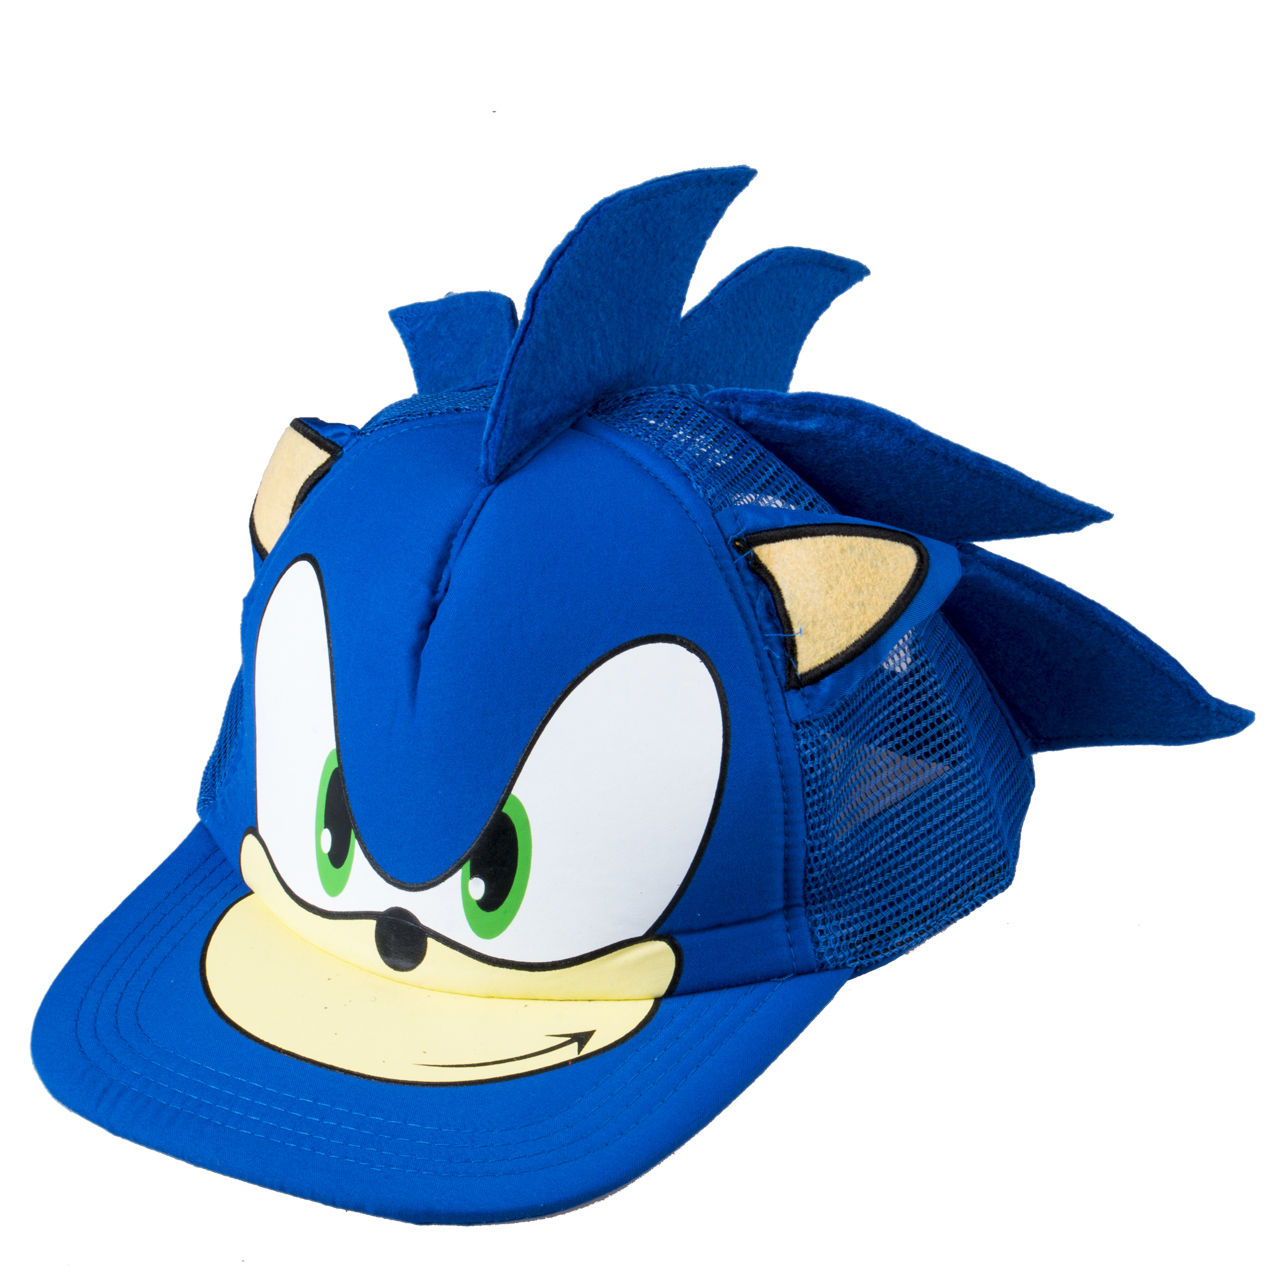 Cute Boy Sonic The Hedgehog Cartoon Youth Adjustable Baseball Hat Cap Blue For Boys Hot Selling